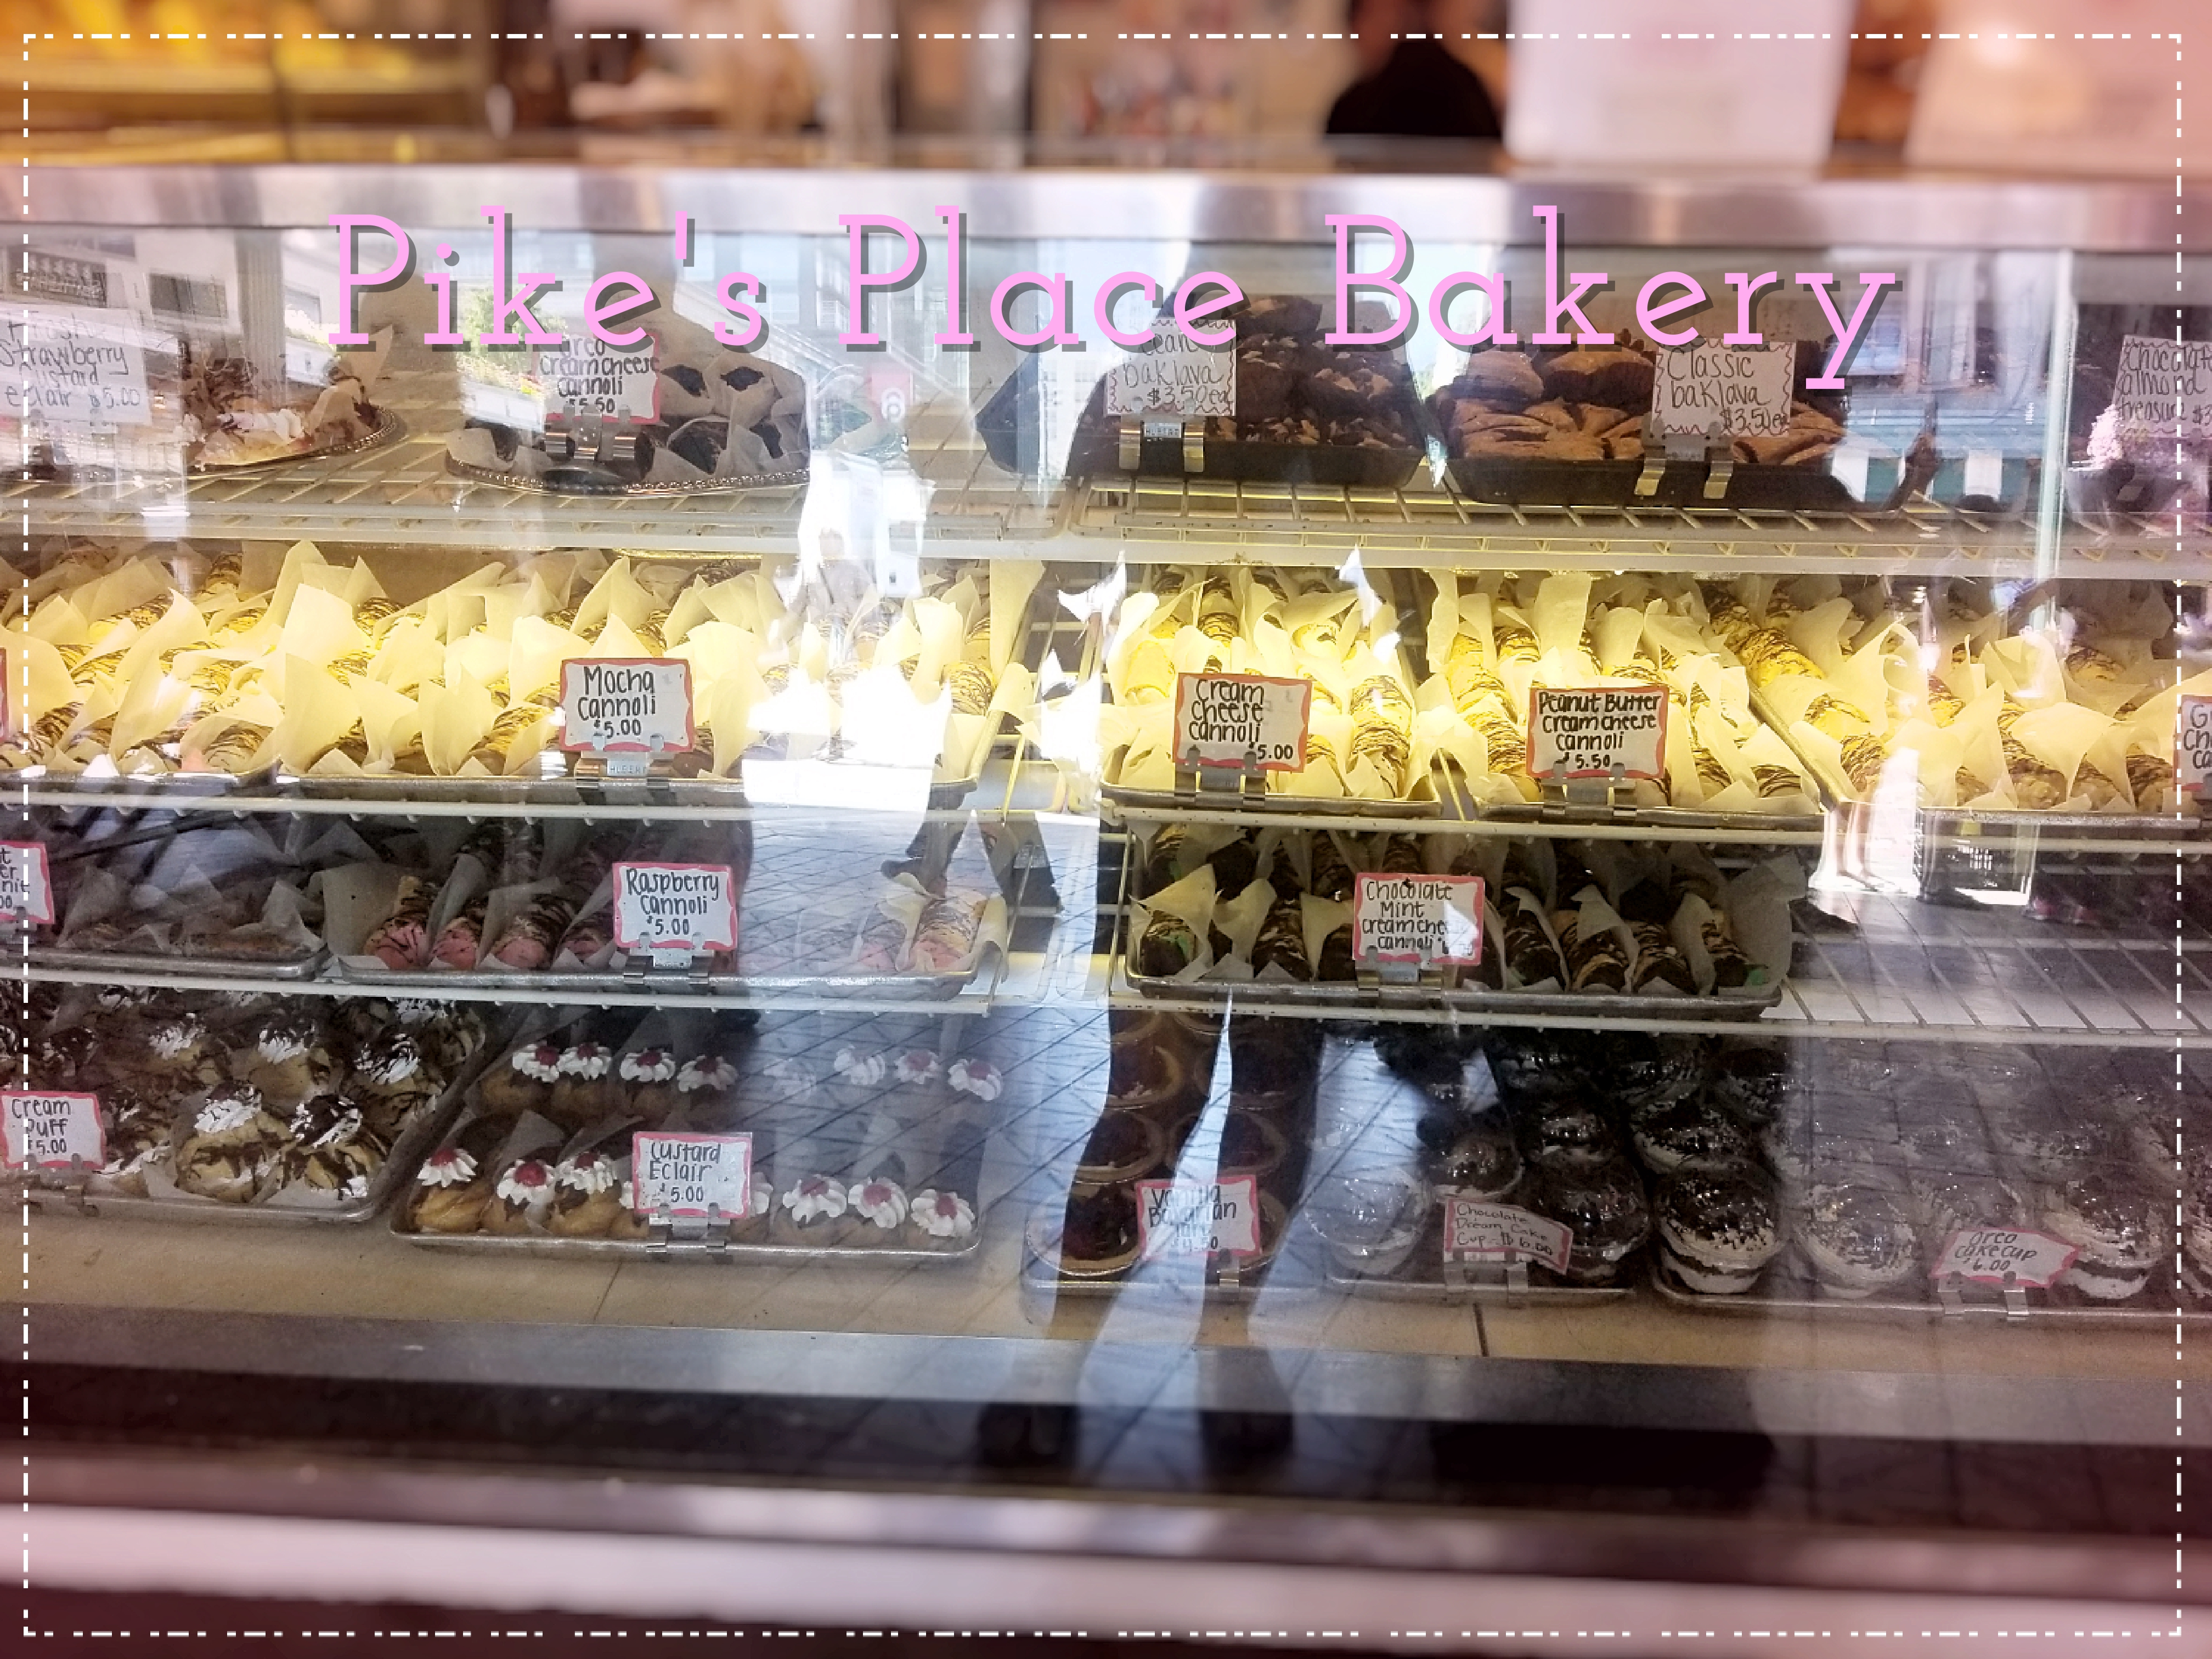 Pike's Place Bakery